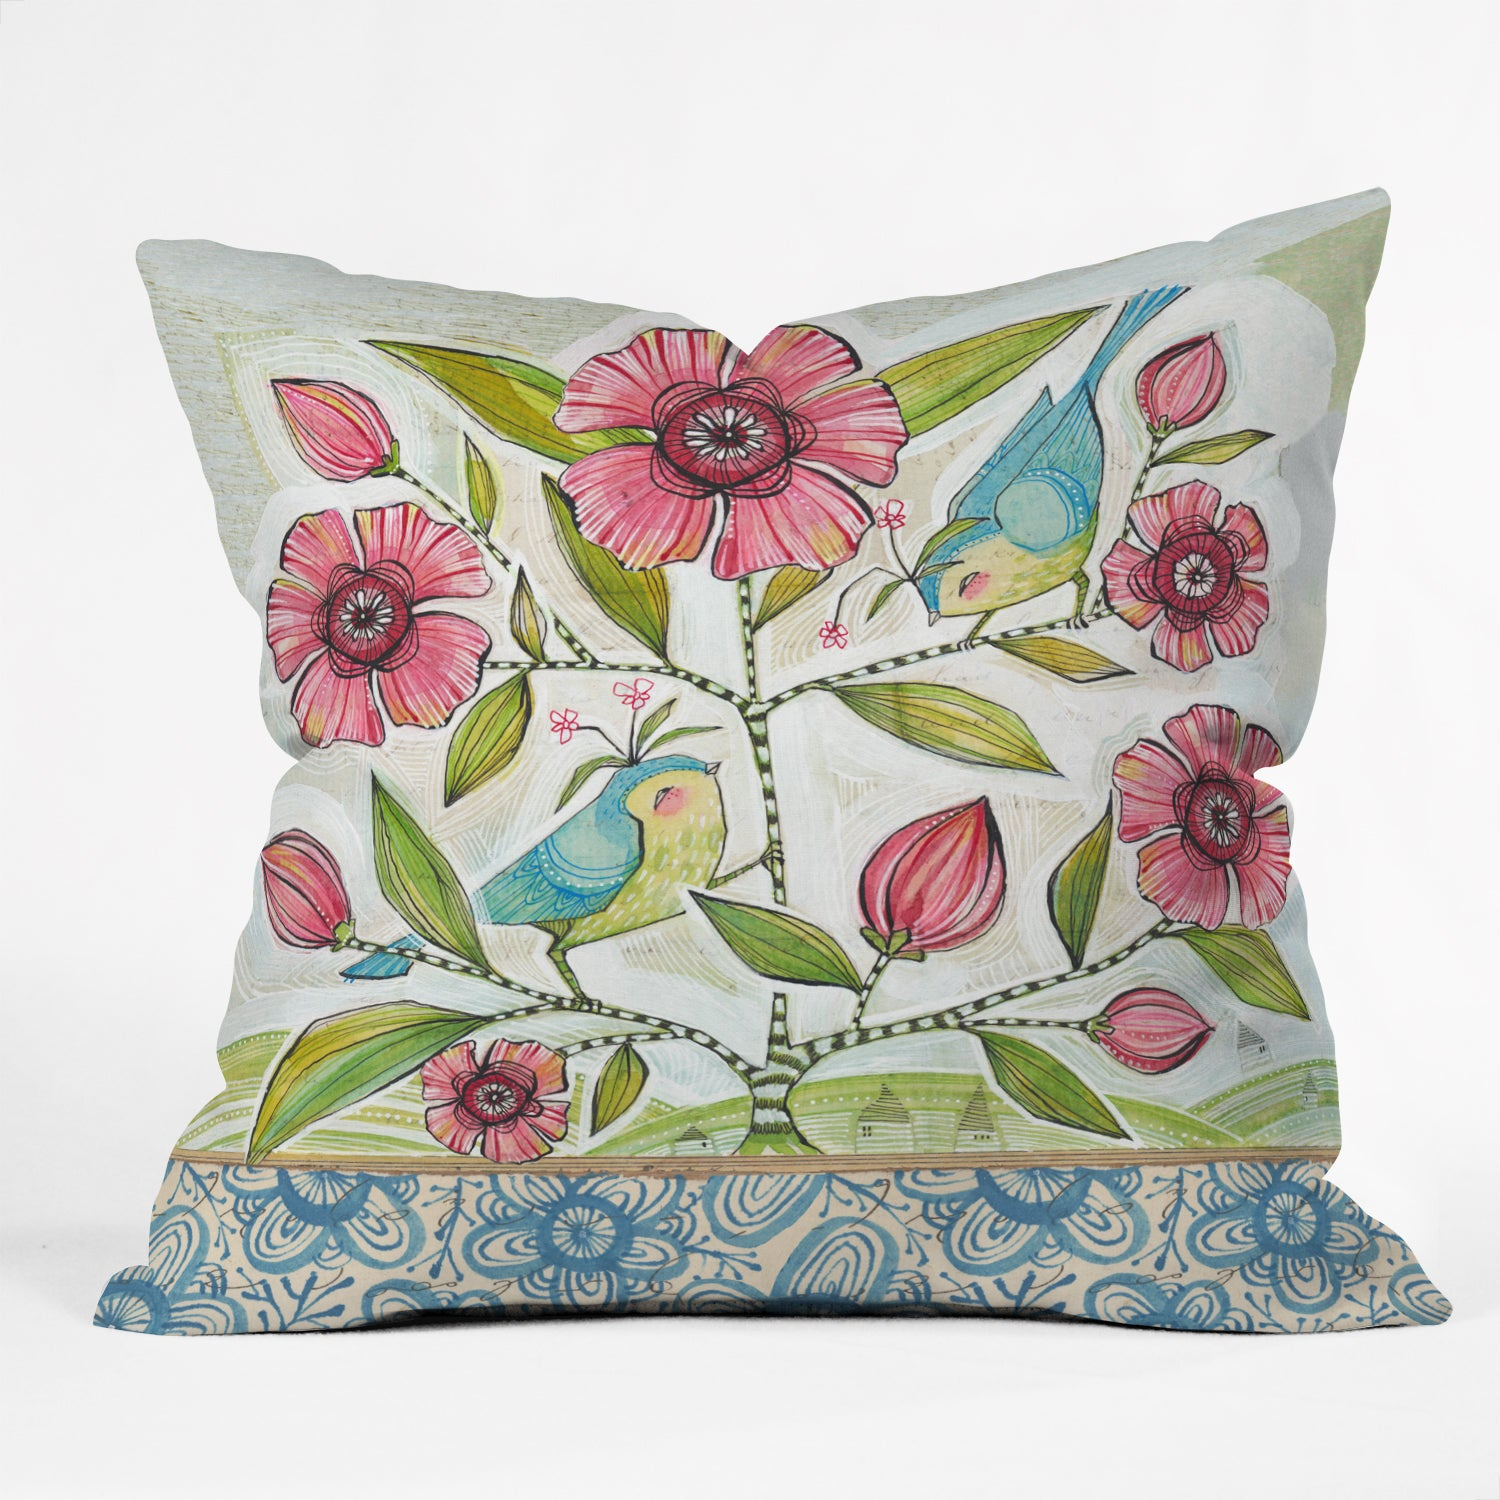 Cori Dantini Blue Birds of Happiness Multicolor Polyester Throw Pillow (Large - 20 x 20)